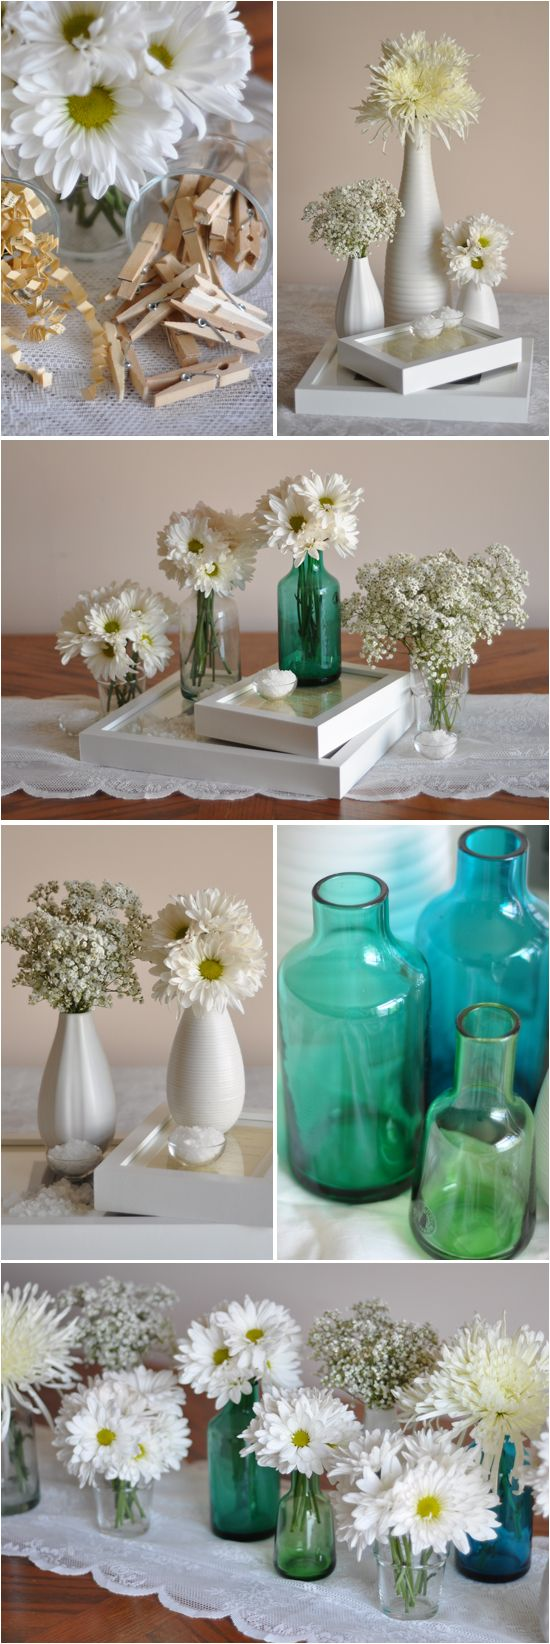 Cute & Thrifty Ikea Centerpieces - love the colors together